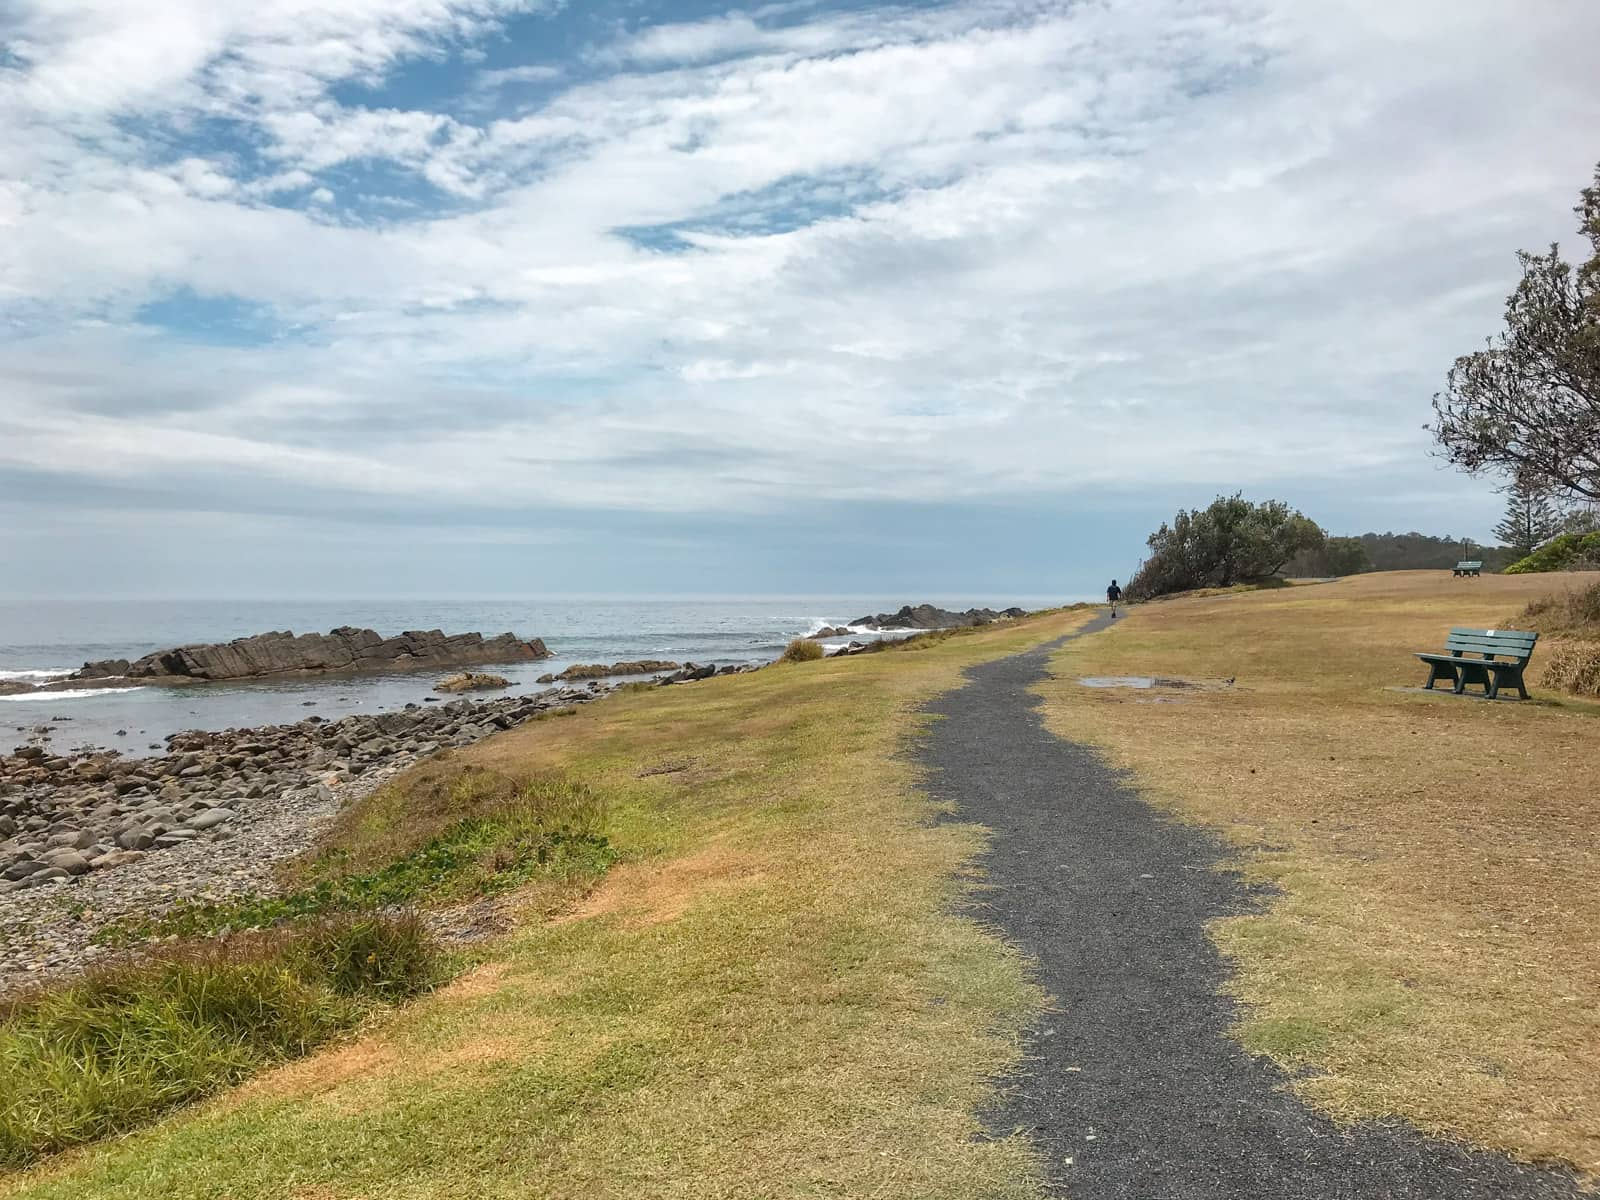 A grassy area with a grey gravel path leading into the distance. The path has ragged edges. On the left is a rocky beach leading to the sea, and on the right is a wooden bench in the foreground. A man can be seen walking on the path in the distance